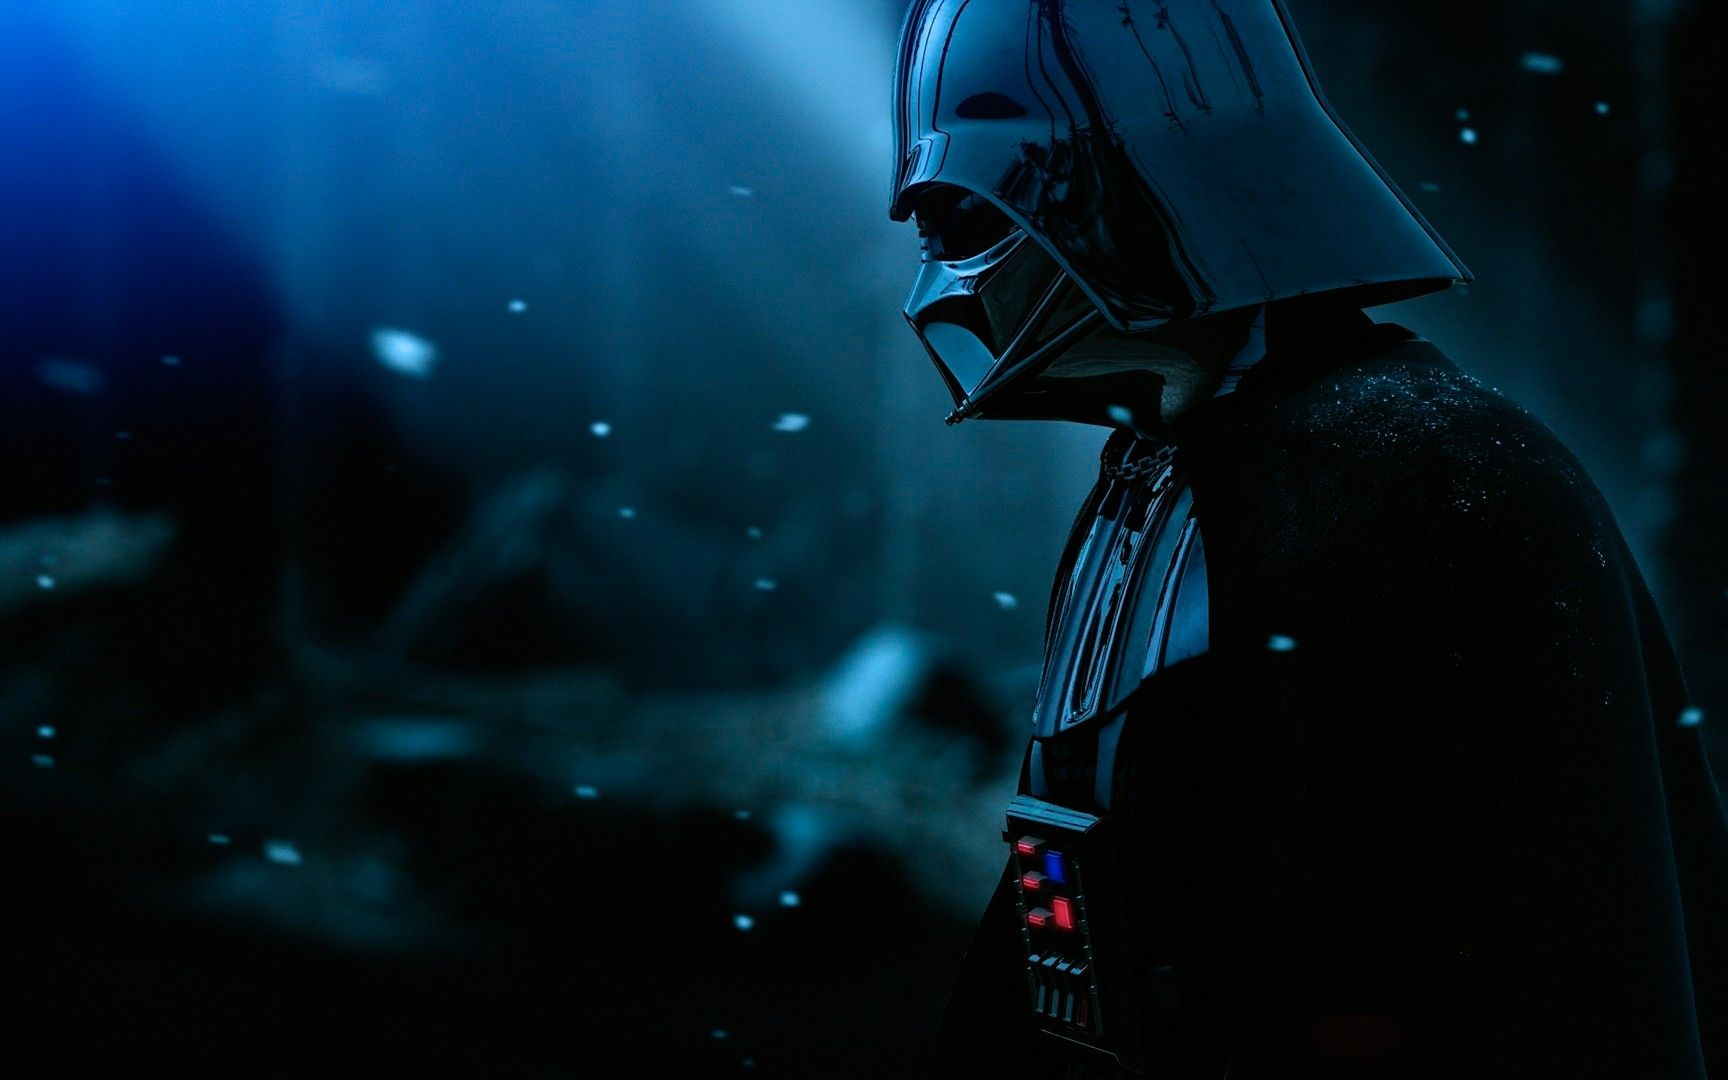 Anakin Skywalker Darth Vader Wallpaper дарт вейдер